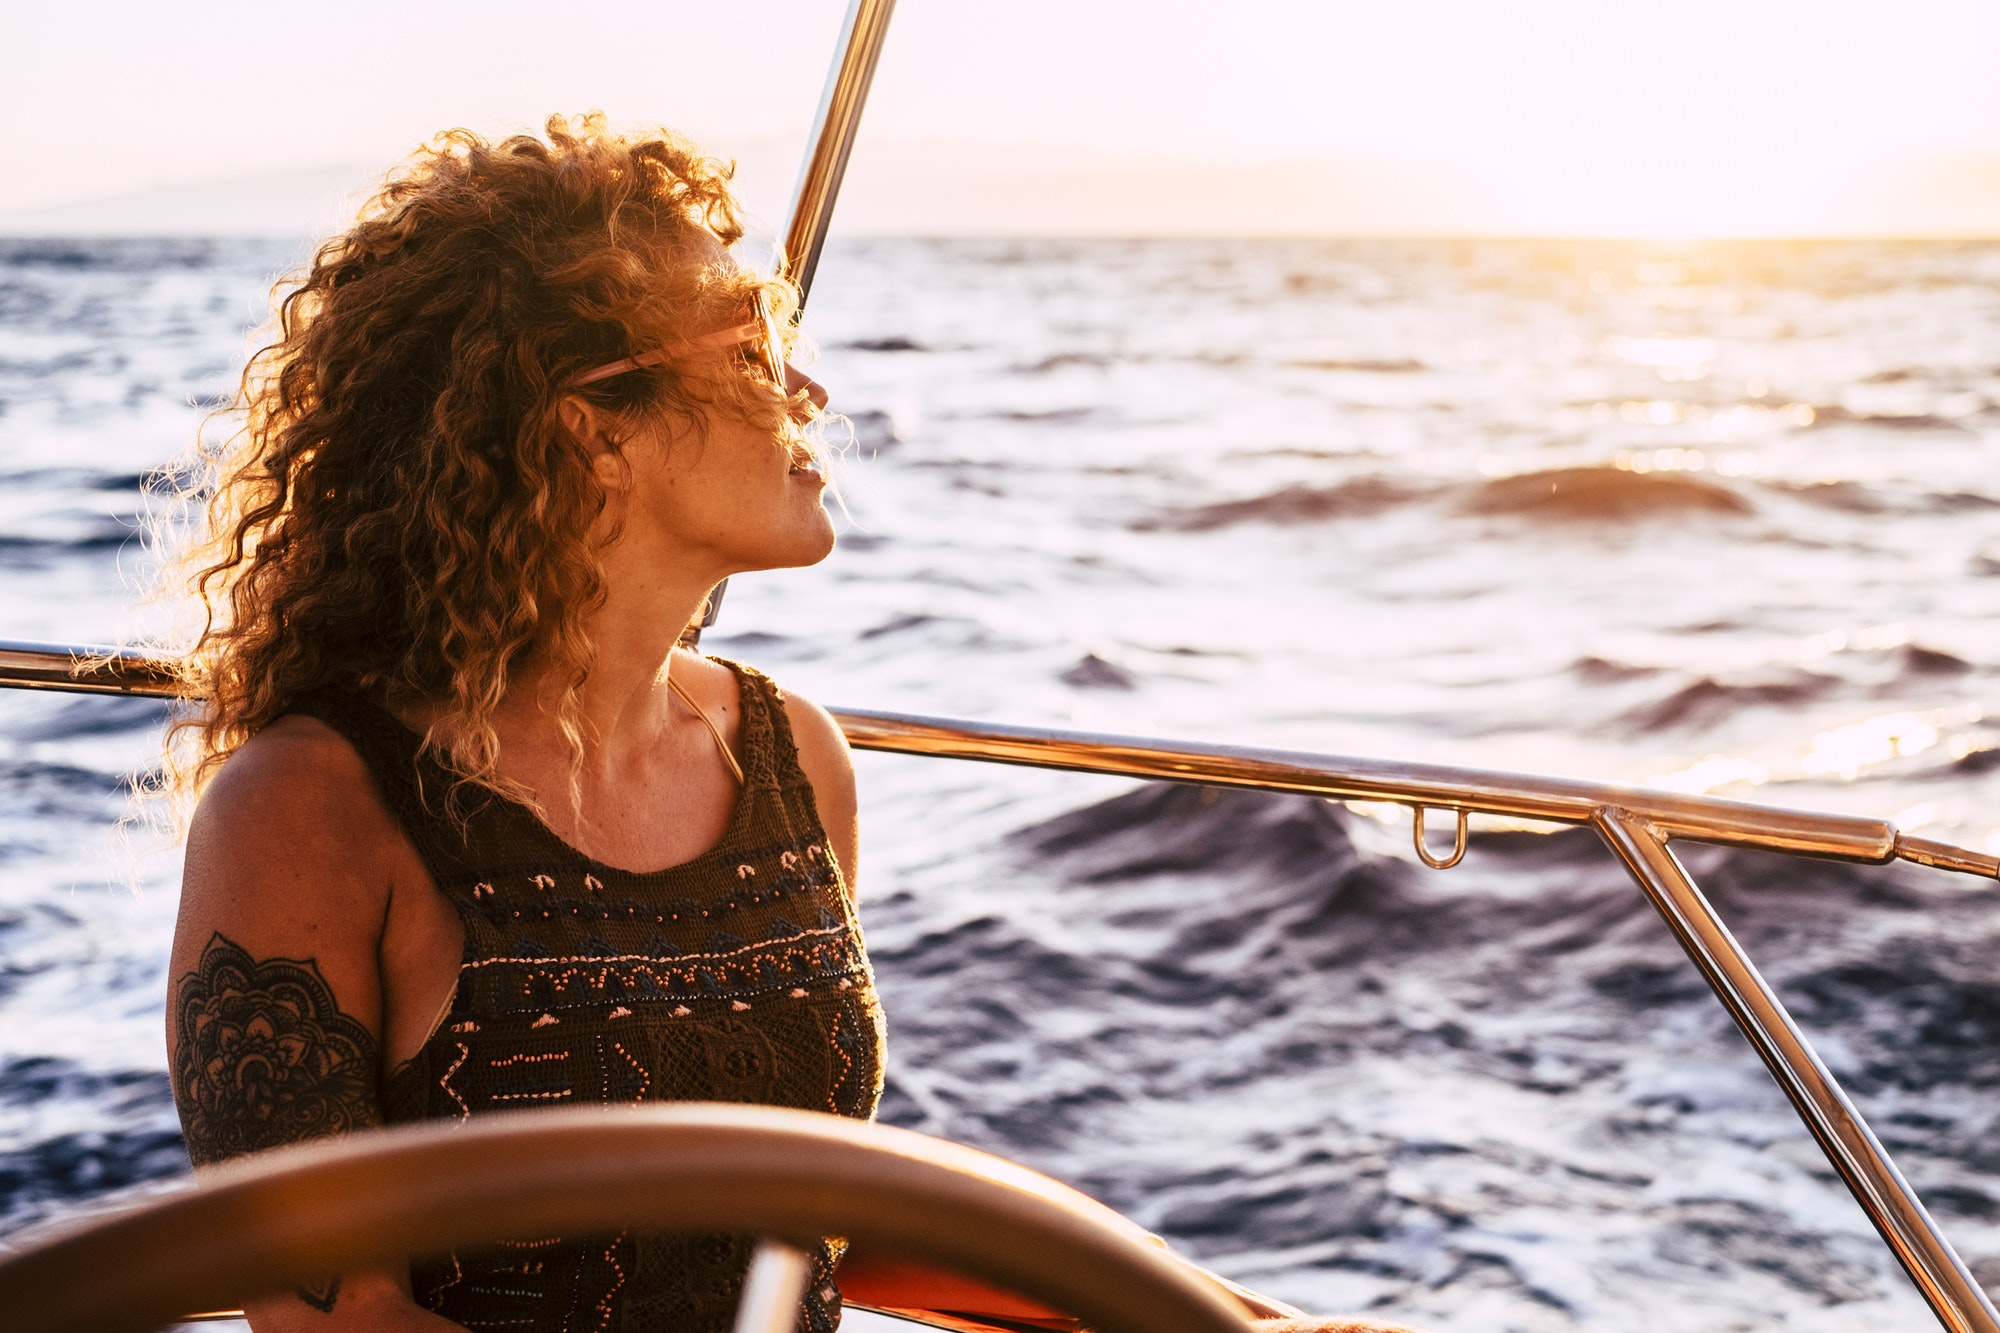 Adult rich woman enjoy luxury lifestyle traveling on sailboat yacht for summer holiday vacation